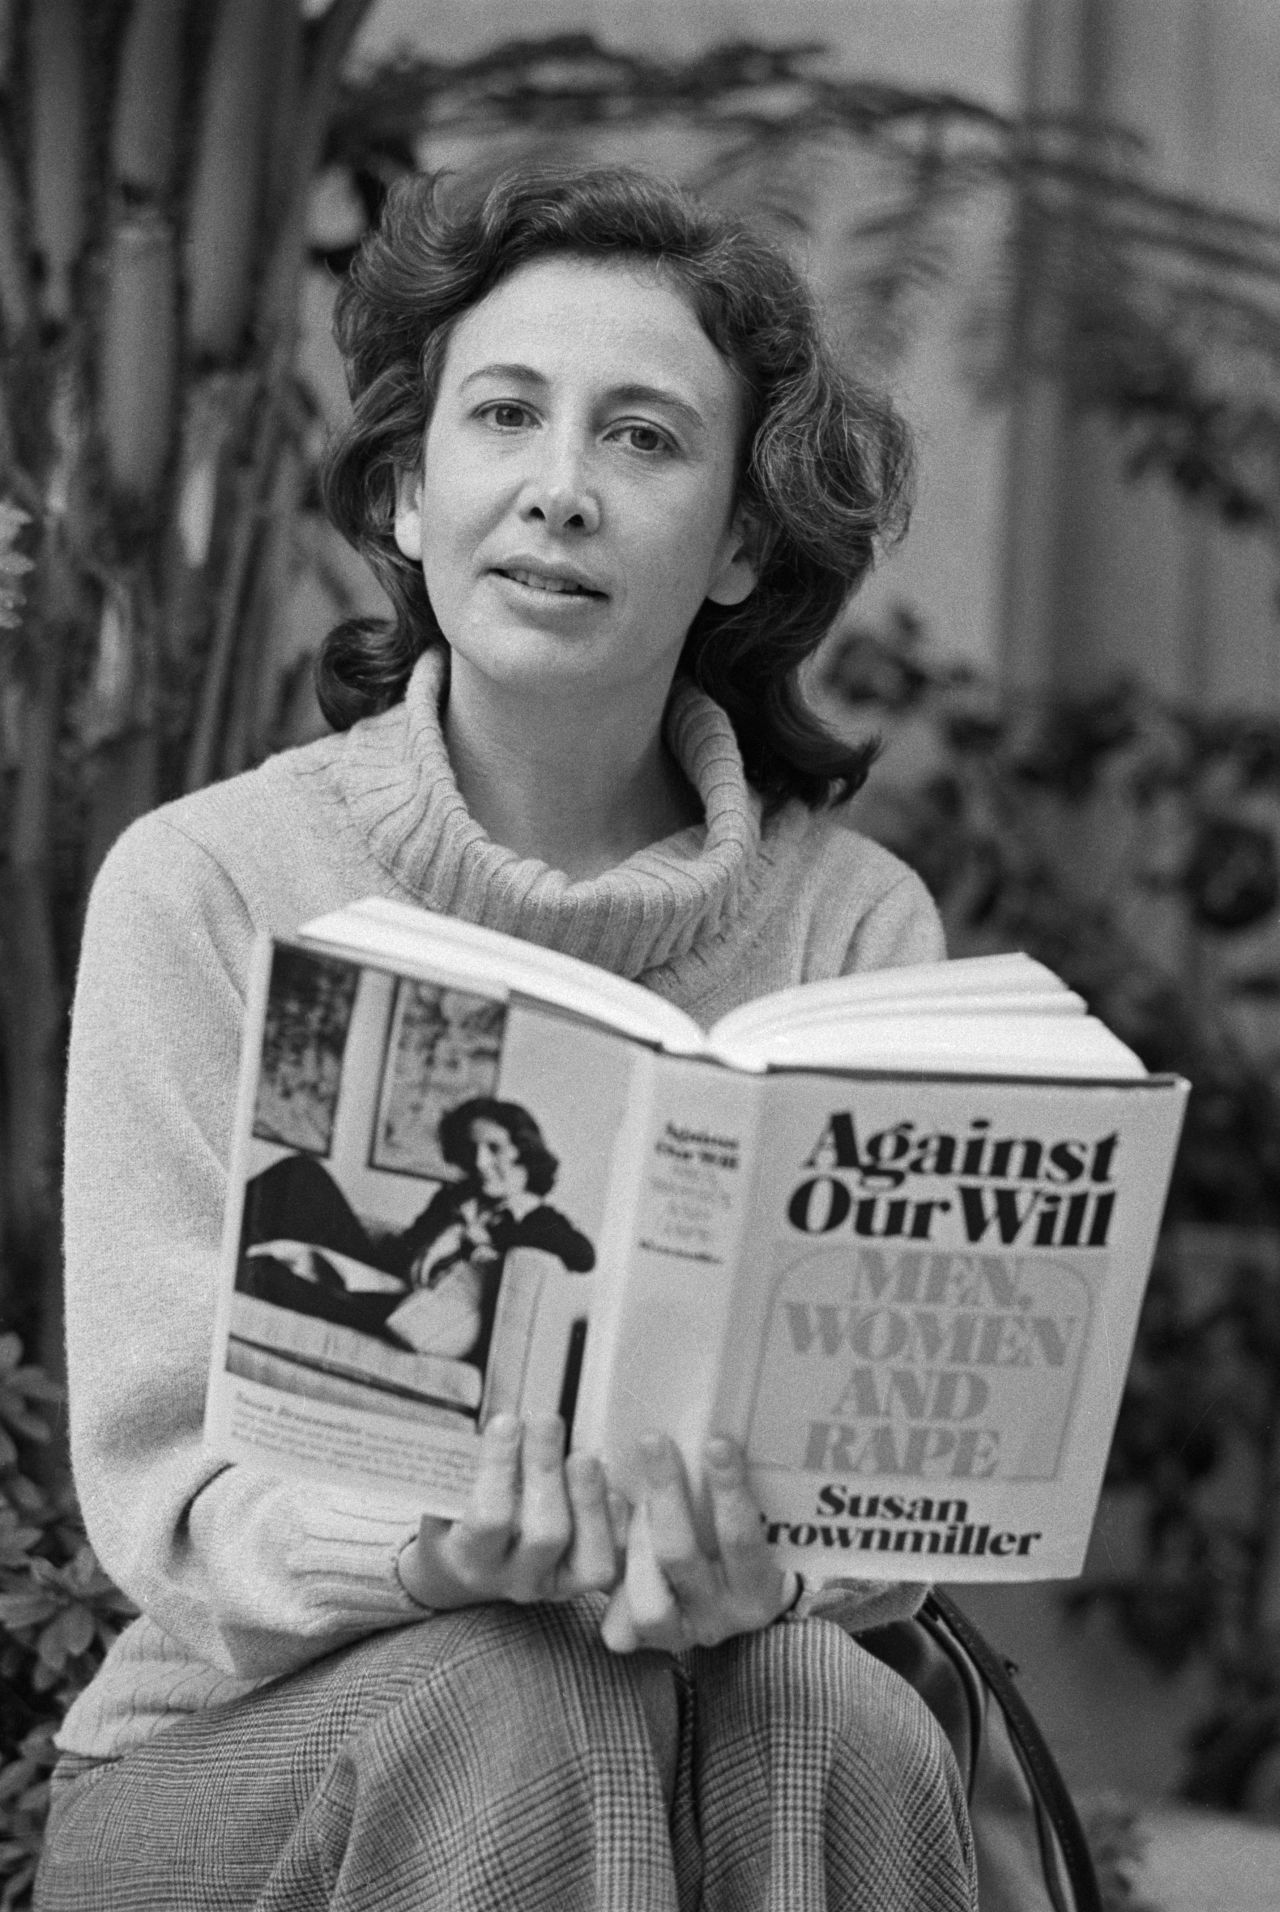 brownmiller femininity essay Essays - largest database of quality sample essays and research papers on femininity by susan brownmiller.